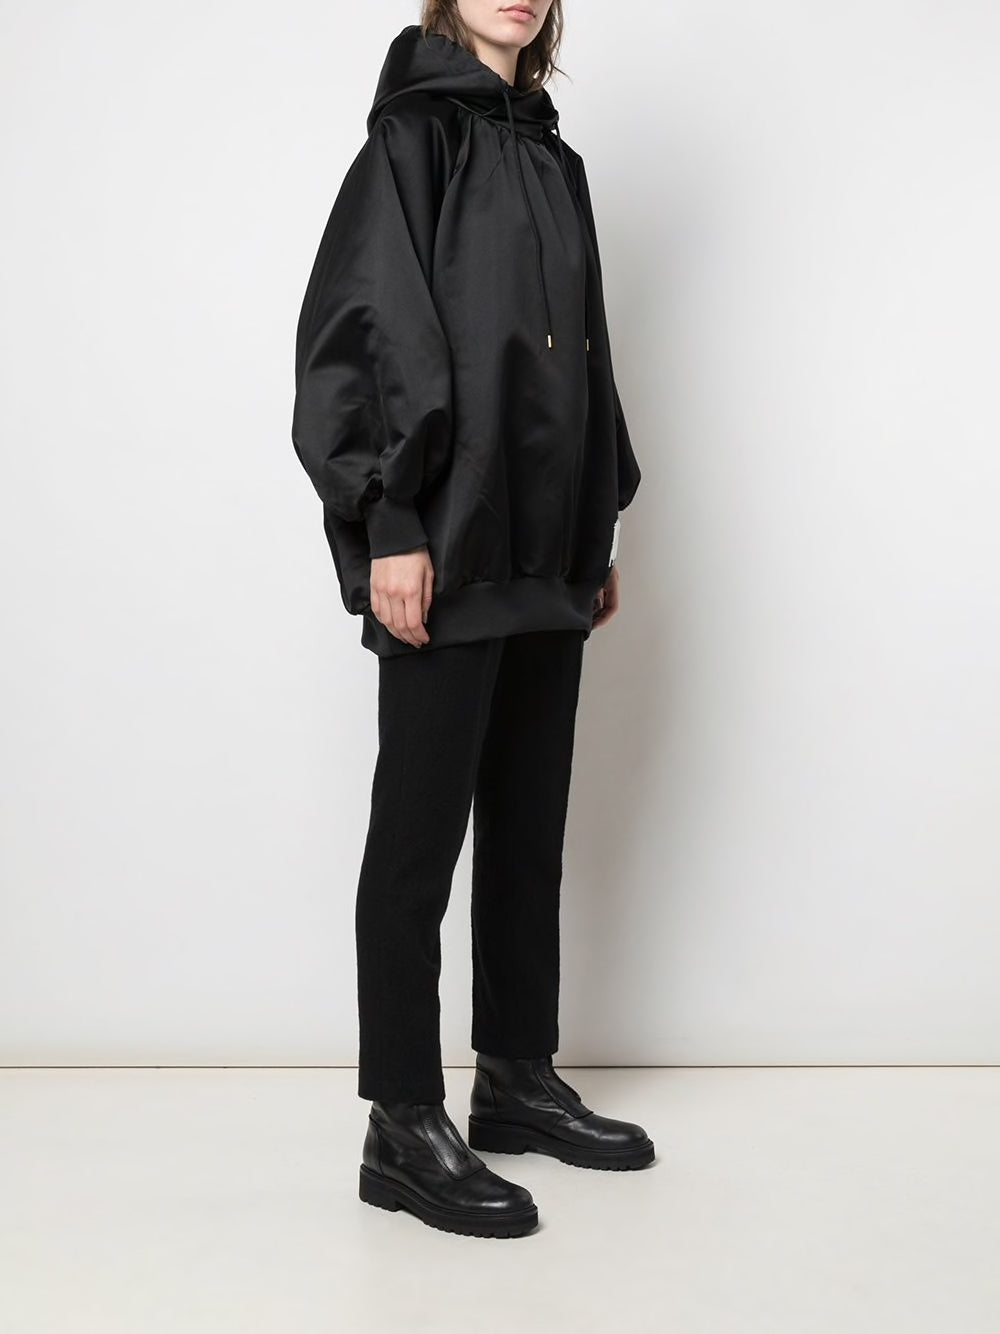 UNDERCOVER WOMEN OVERSIZED PONCHO HOODIE